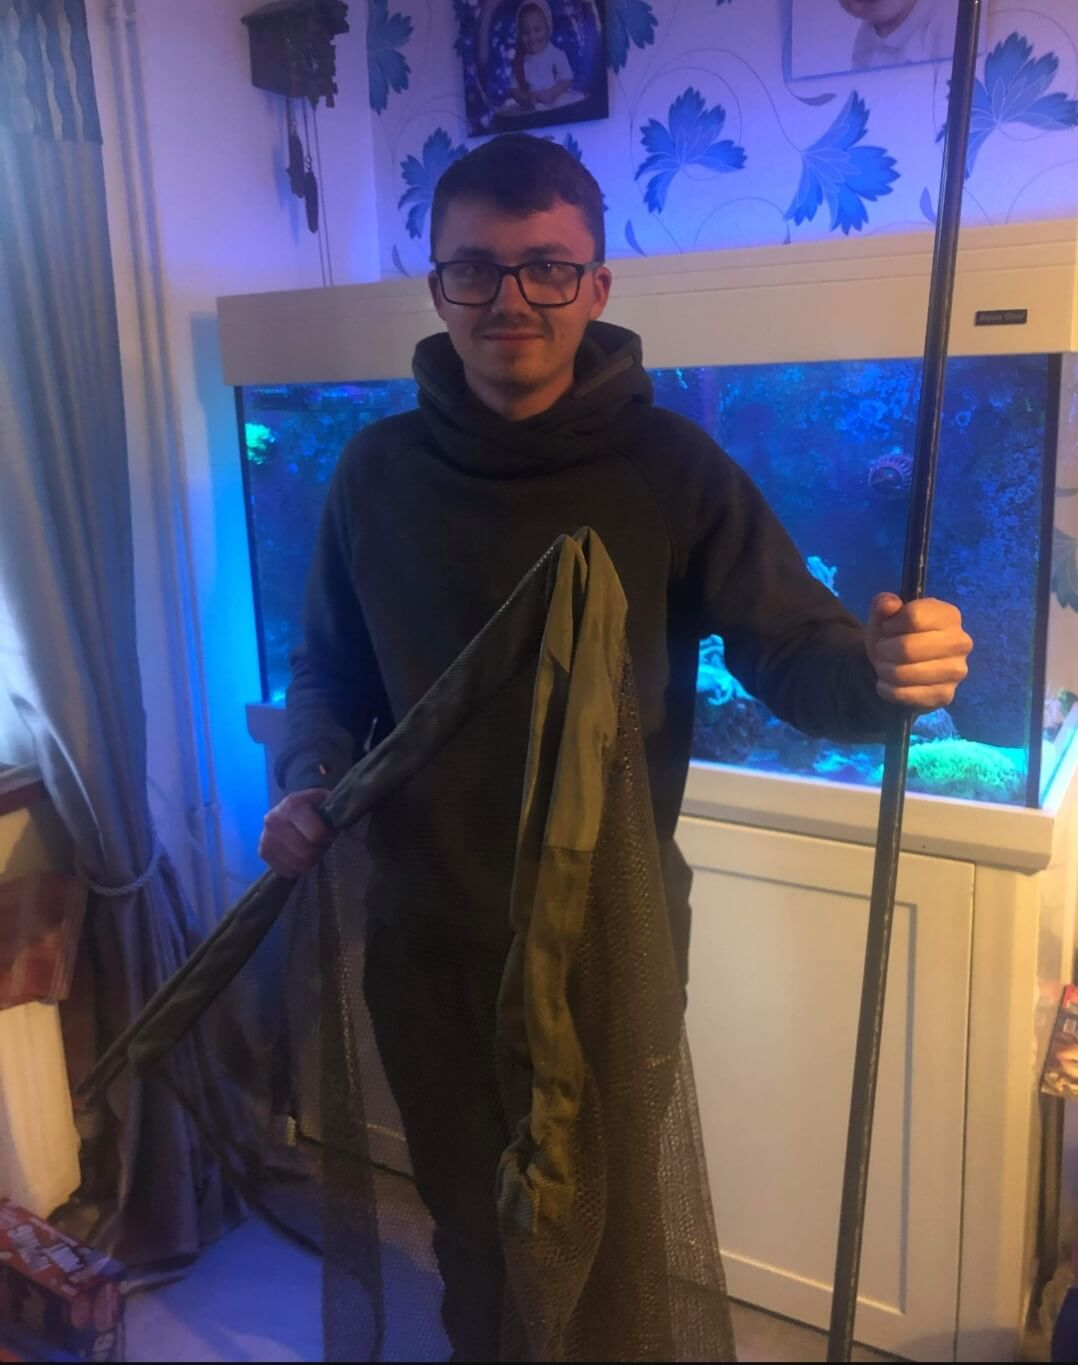 Jake Dadswell wins the Fox Horizon X3 Landing Net